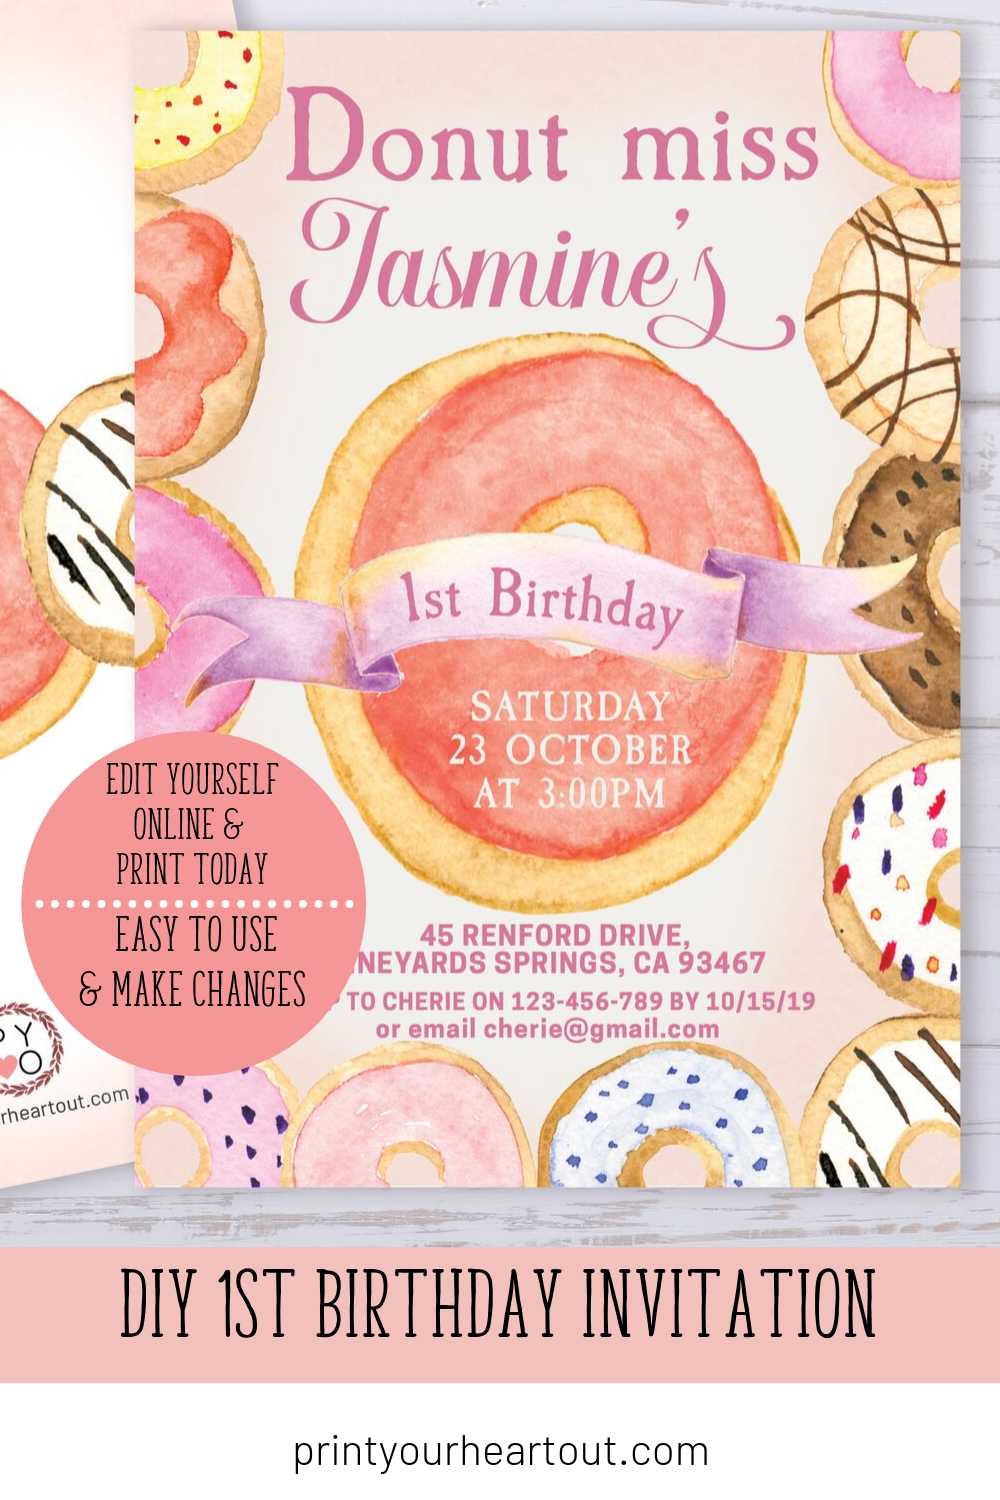 Print Your Own Birthday Invitations This Invitation Template Is Easy To Edit Us Diy 1st Birthday Invitations Donut Invitation Printable Party Invitations Kids